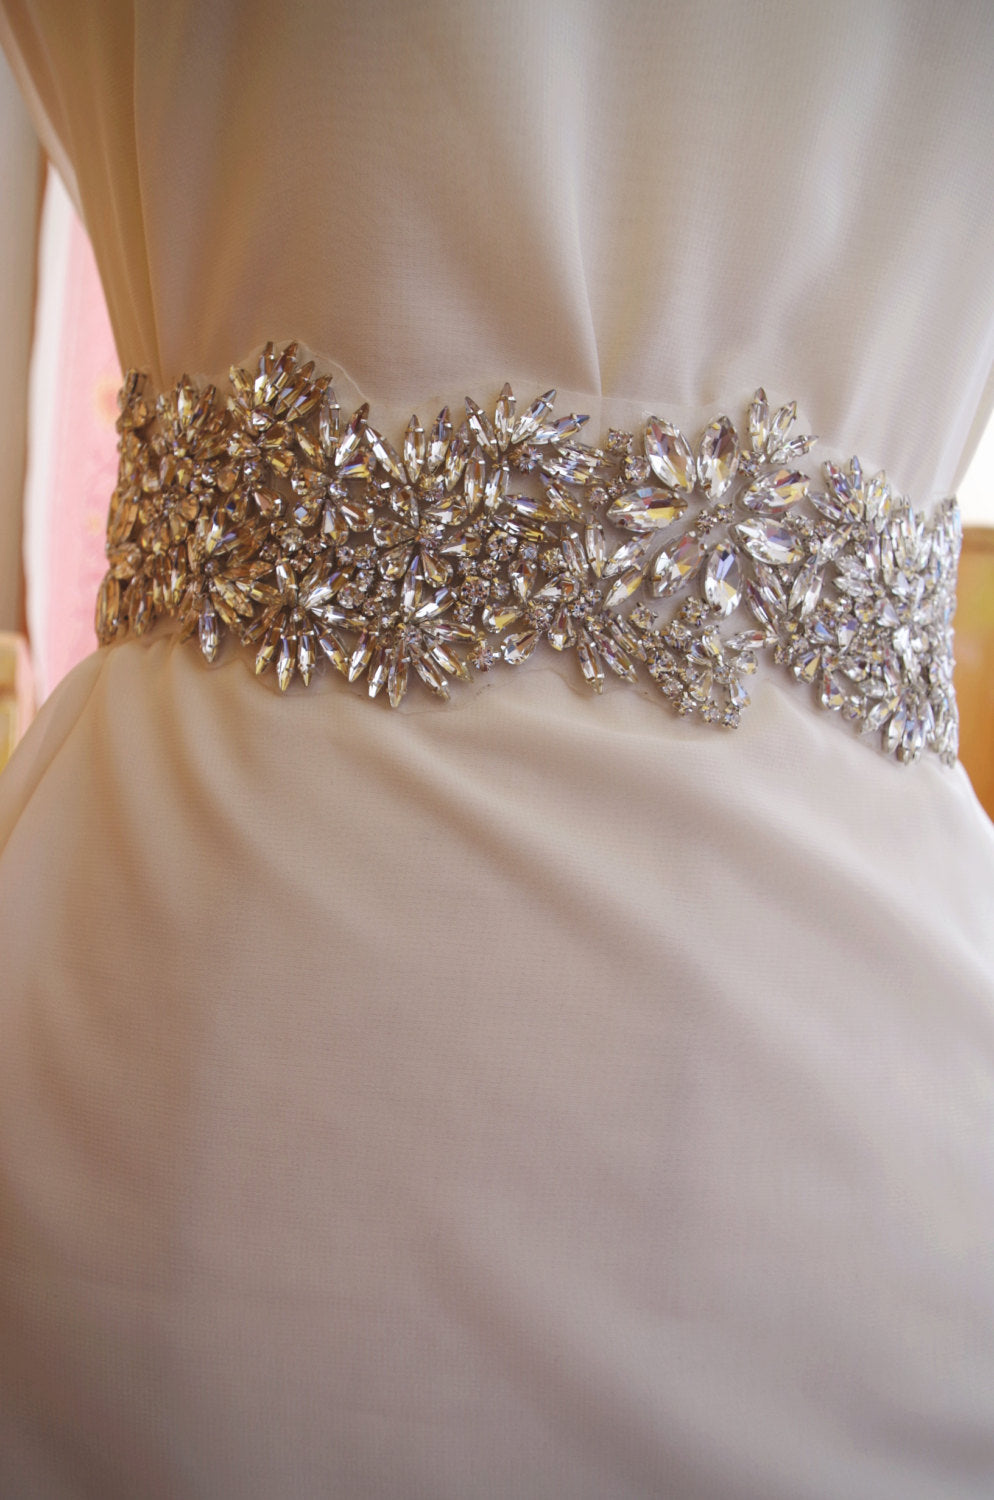 crystal sash applique, rhinestone sash Applique, bridal sash applique, rhinestone bridal belt wedding sash belt wedding belt one piece